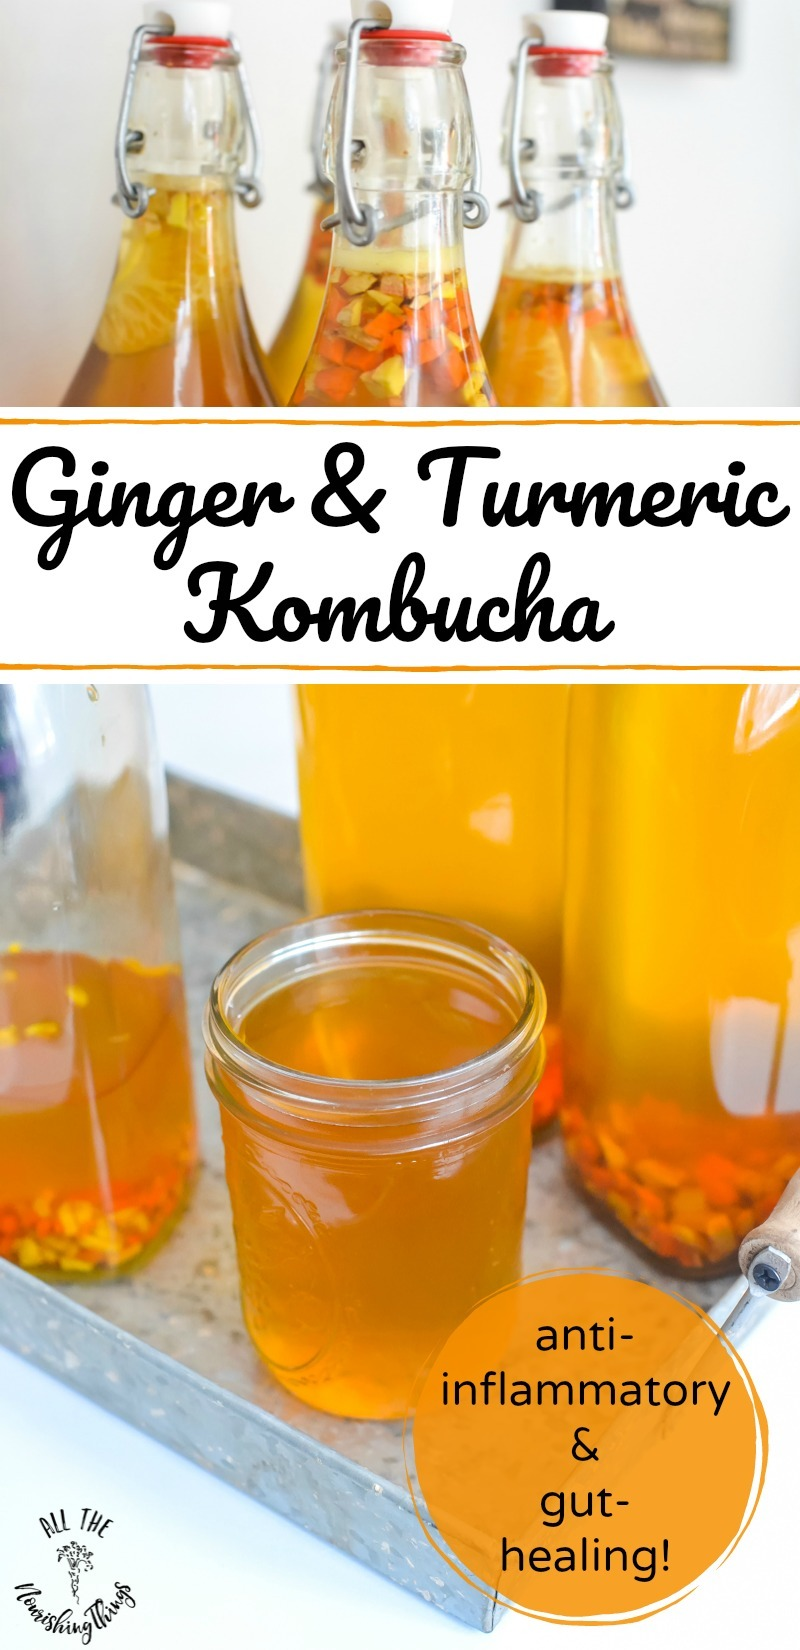 collage of 2 images of ginger and turmeric kombucha with text overlay